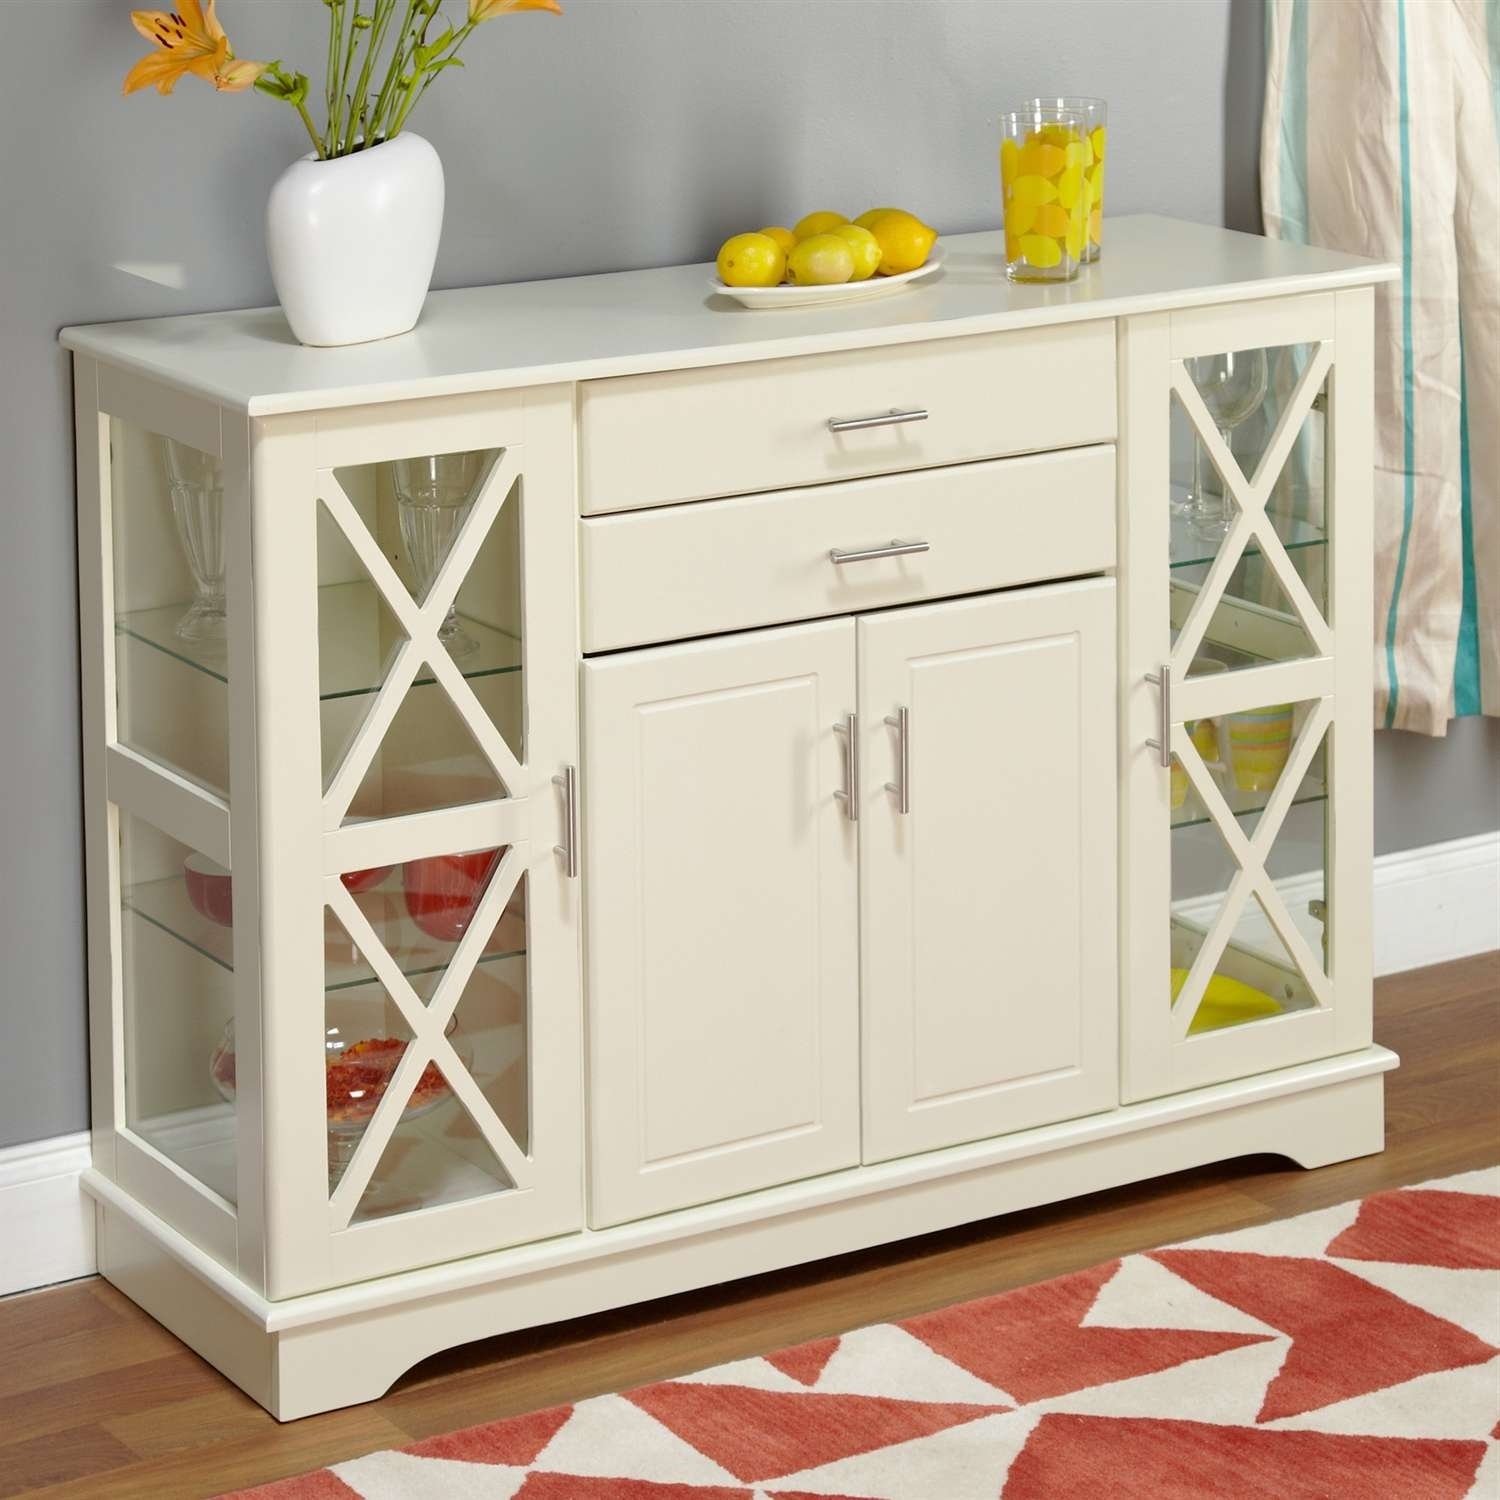 Sideboards & Buffets Regarding Sideboards With Glass Doors And Drawers (View 15 of 20)